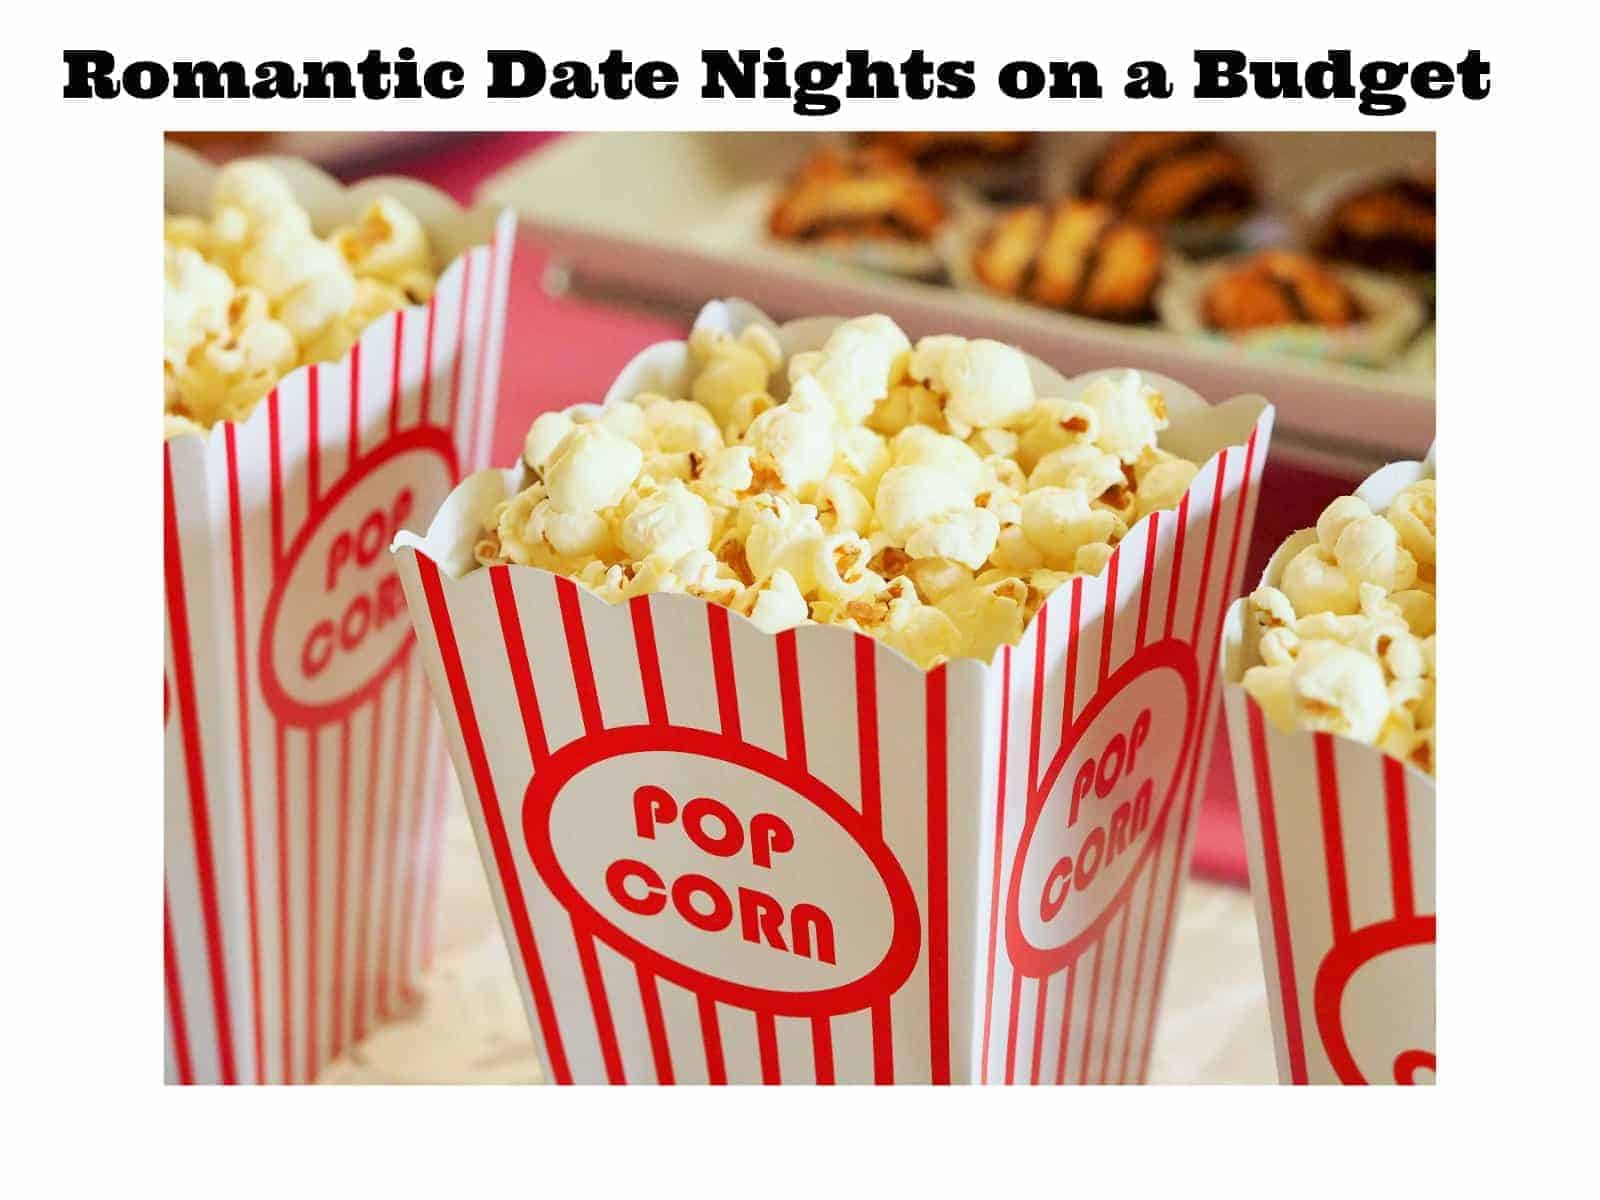 Romantic Date Nights on a Budget